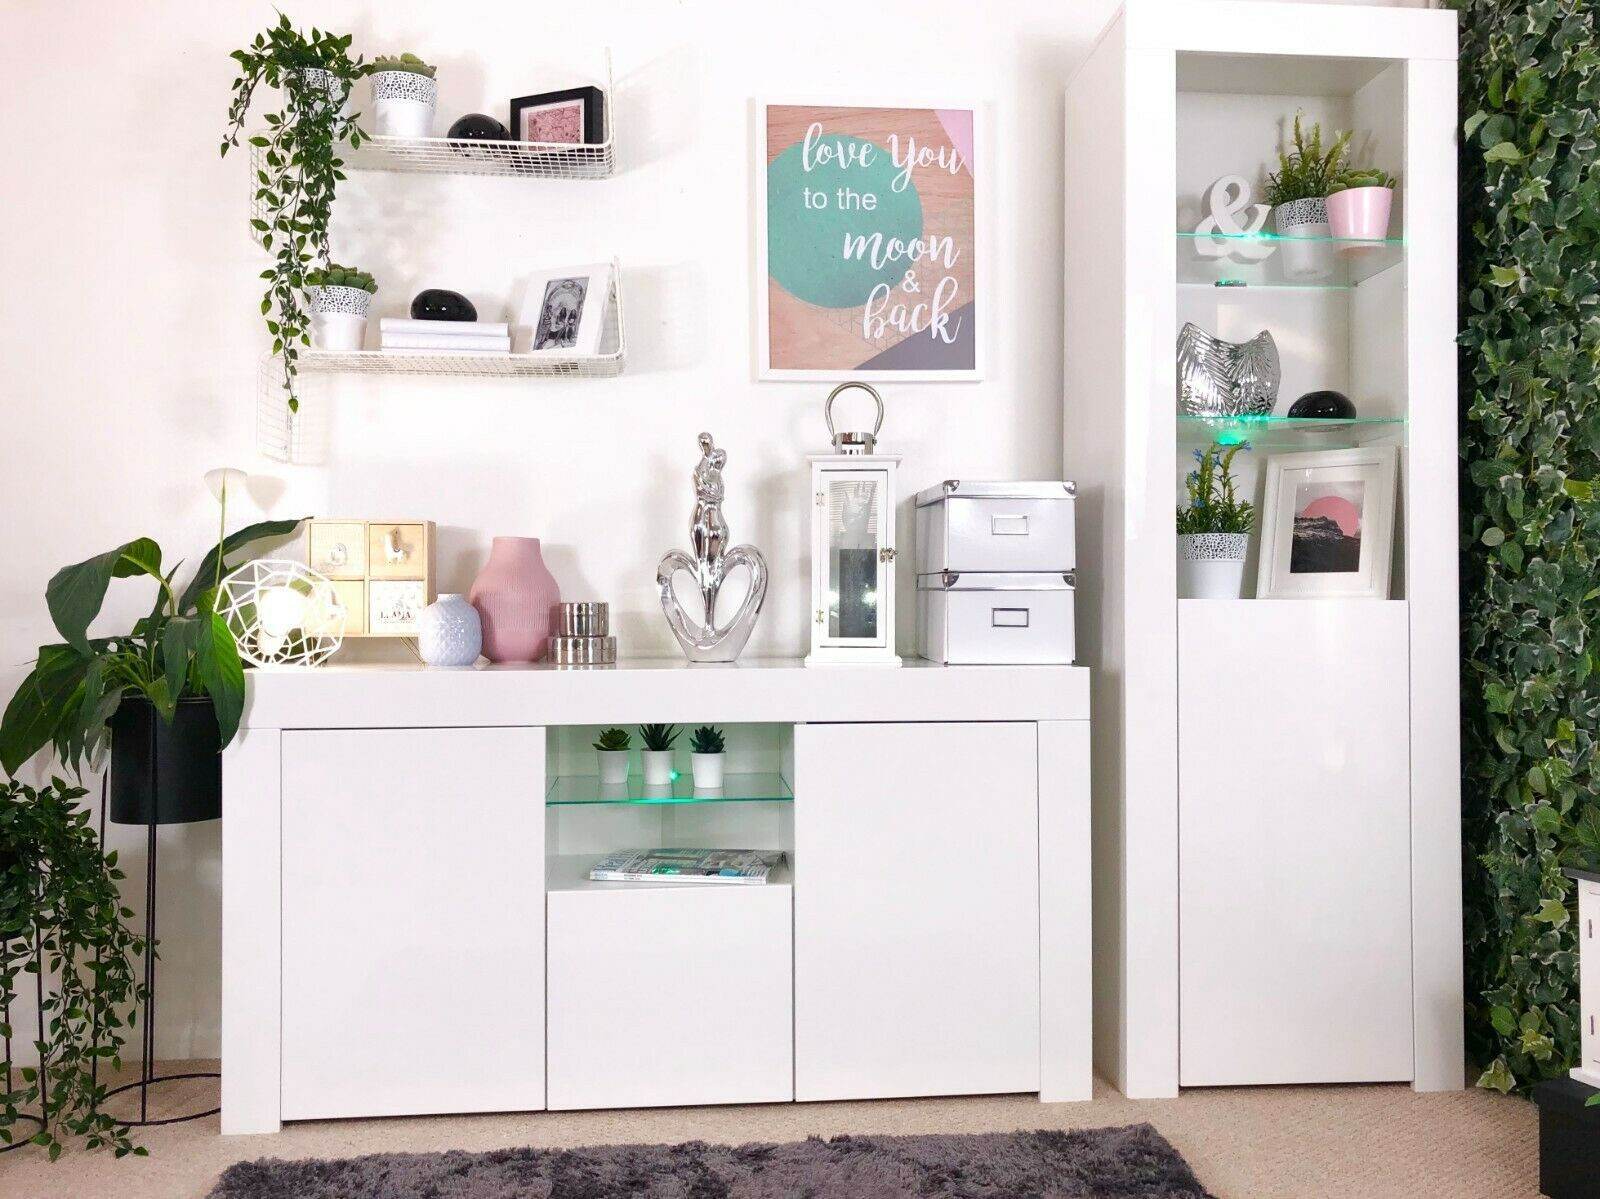 Details About Modern White Gloss Cabinet Cupboard Sideboard Glass Display Unit Blue Led Light Glass Display Unit Living Room Storage Modern Sideboard #white #living #room #storage #cabinets